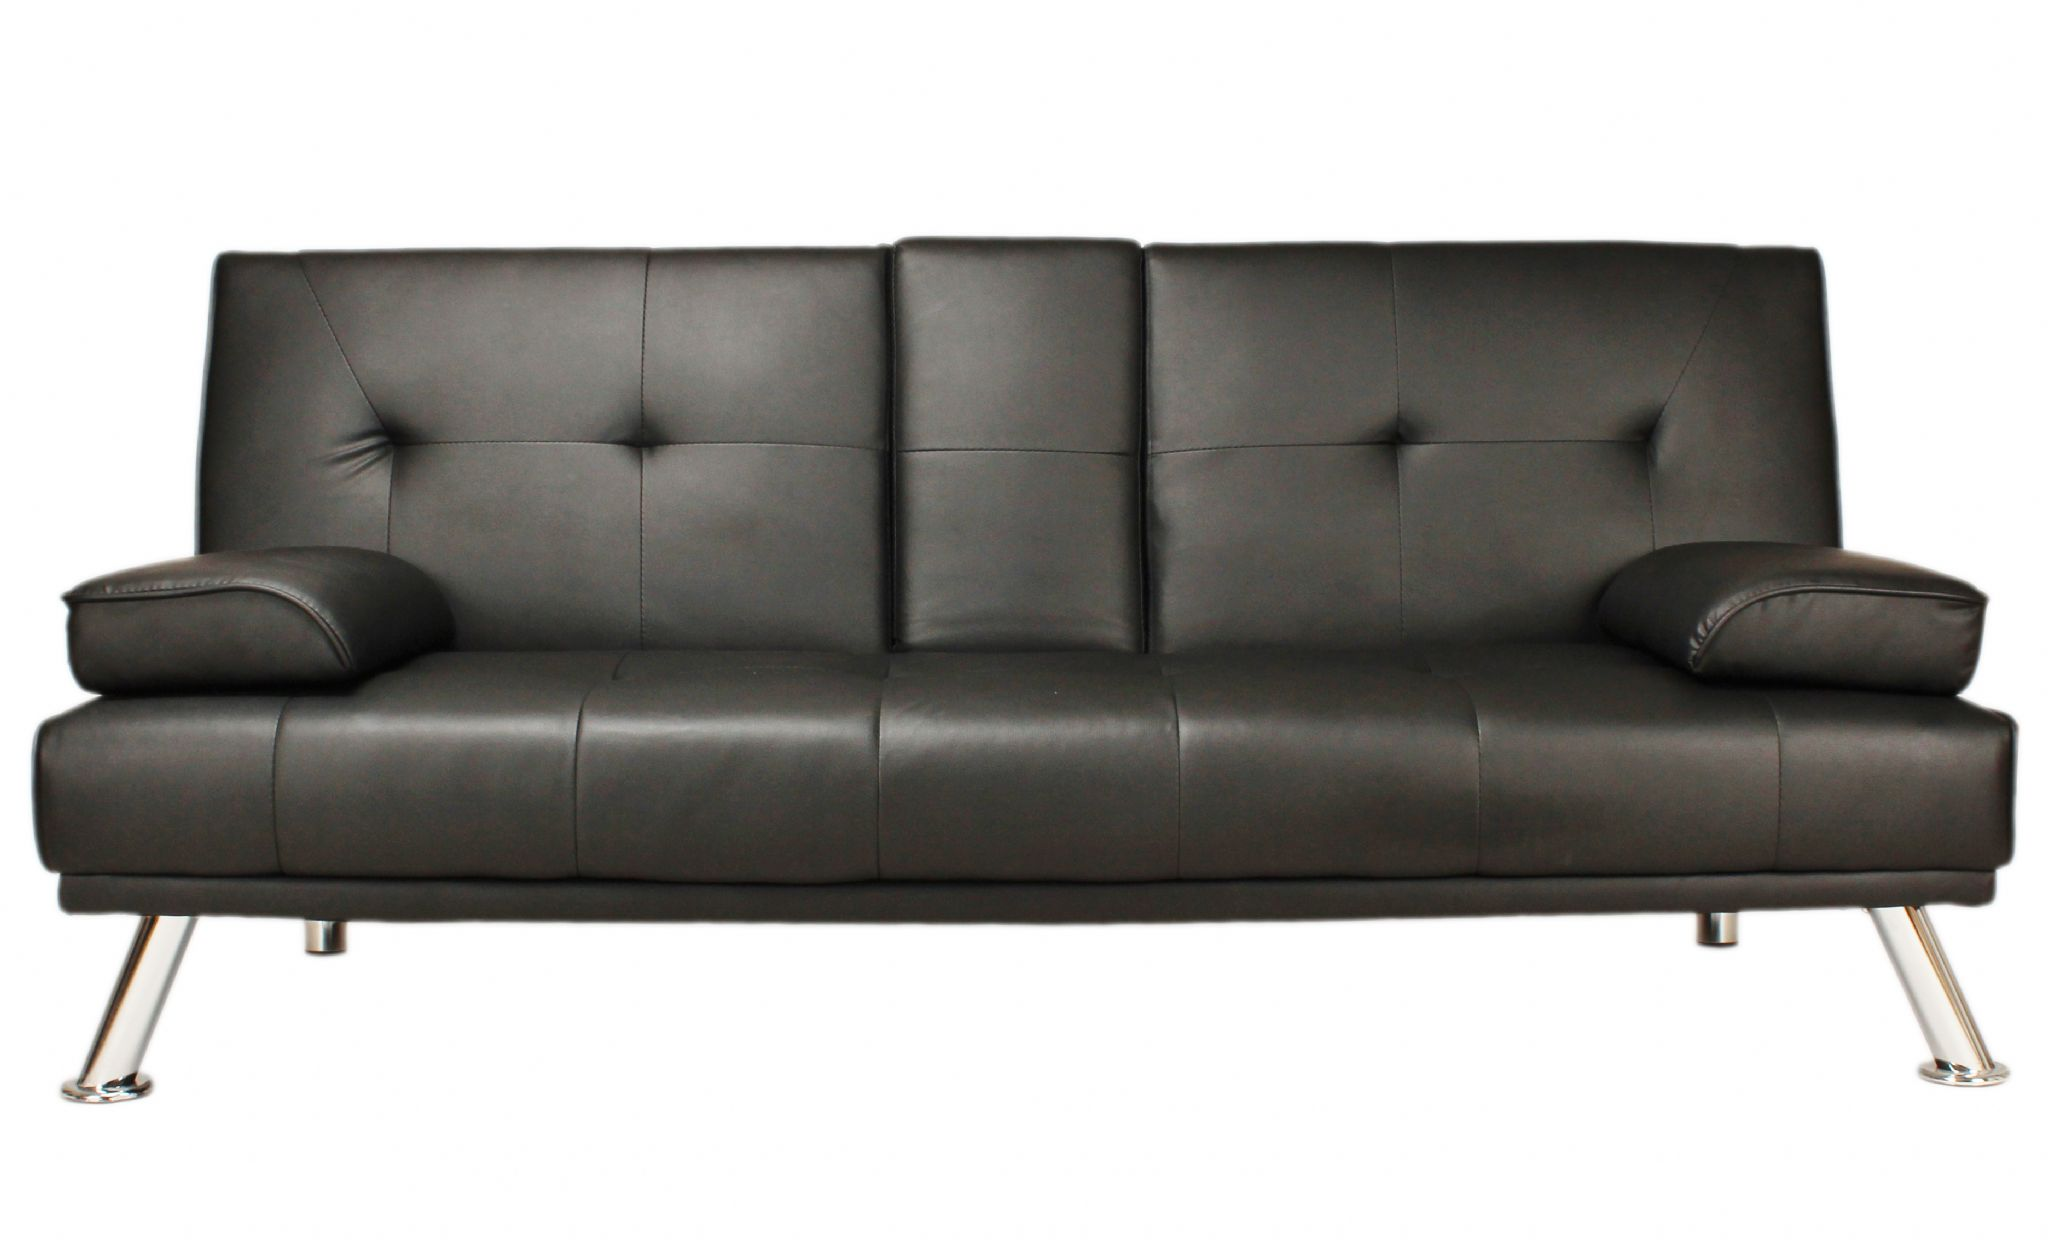 Cheap Clic Clac Sofa Bed Uk